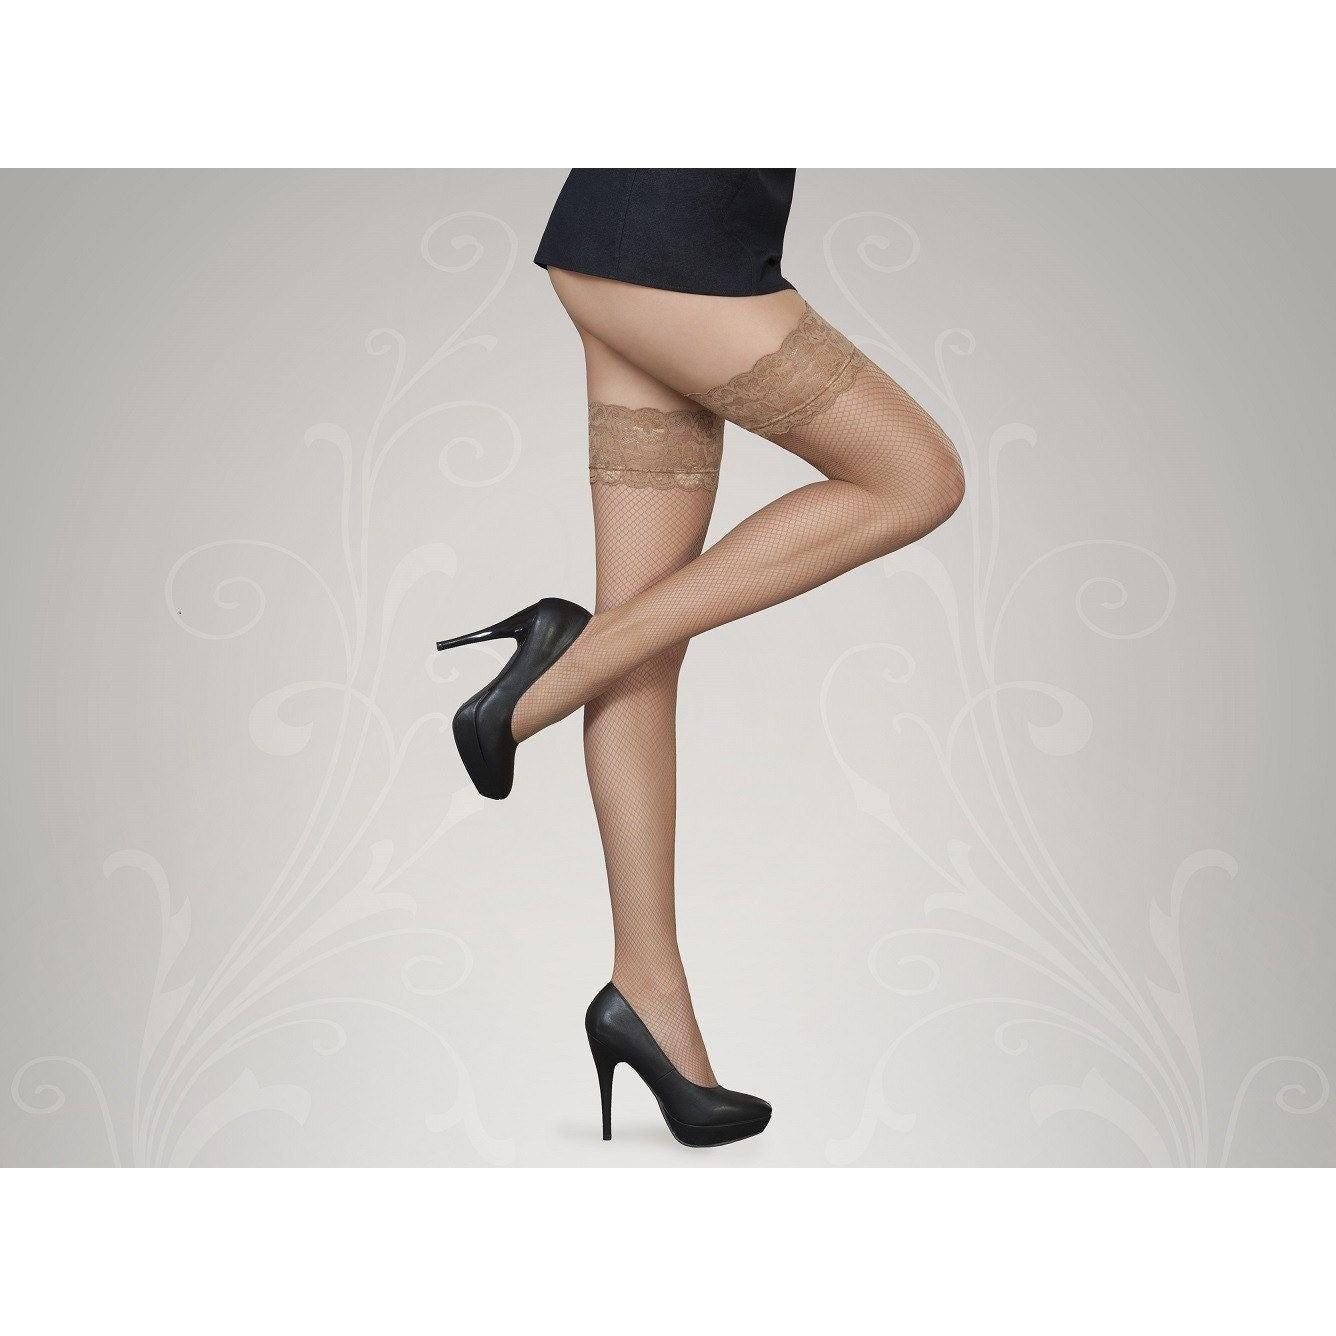 Antilope fishnet thigh high stockings for <span class=money>€6.95 EUR</span> at Flirtywomen